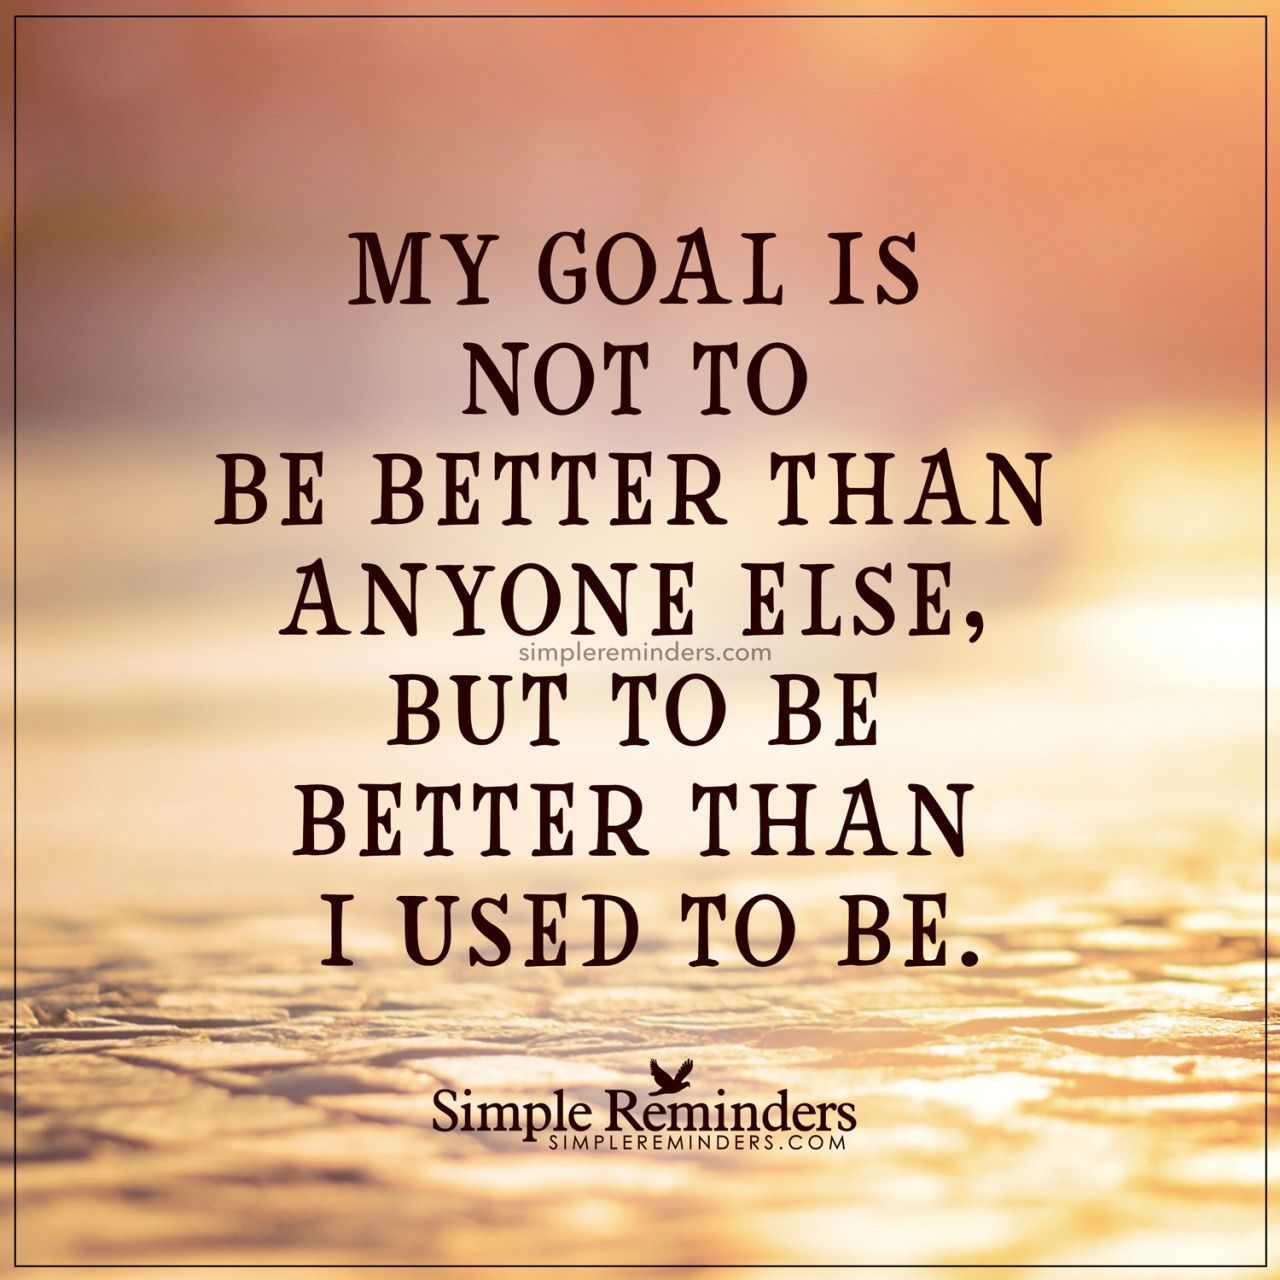 """mysimplereminders: """"My goal is not to be better ..."""